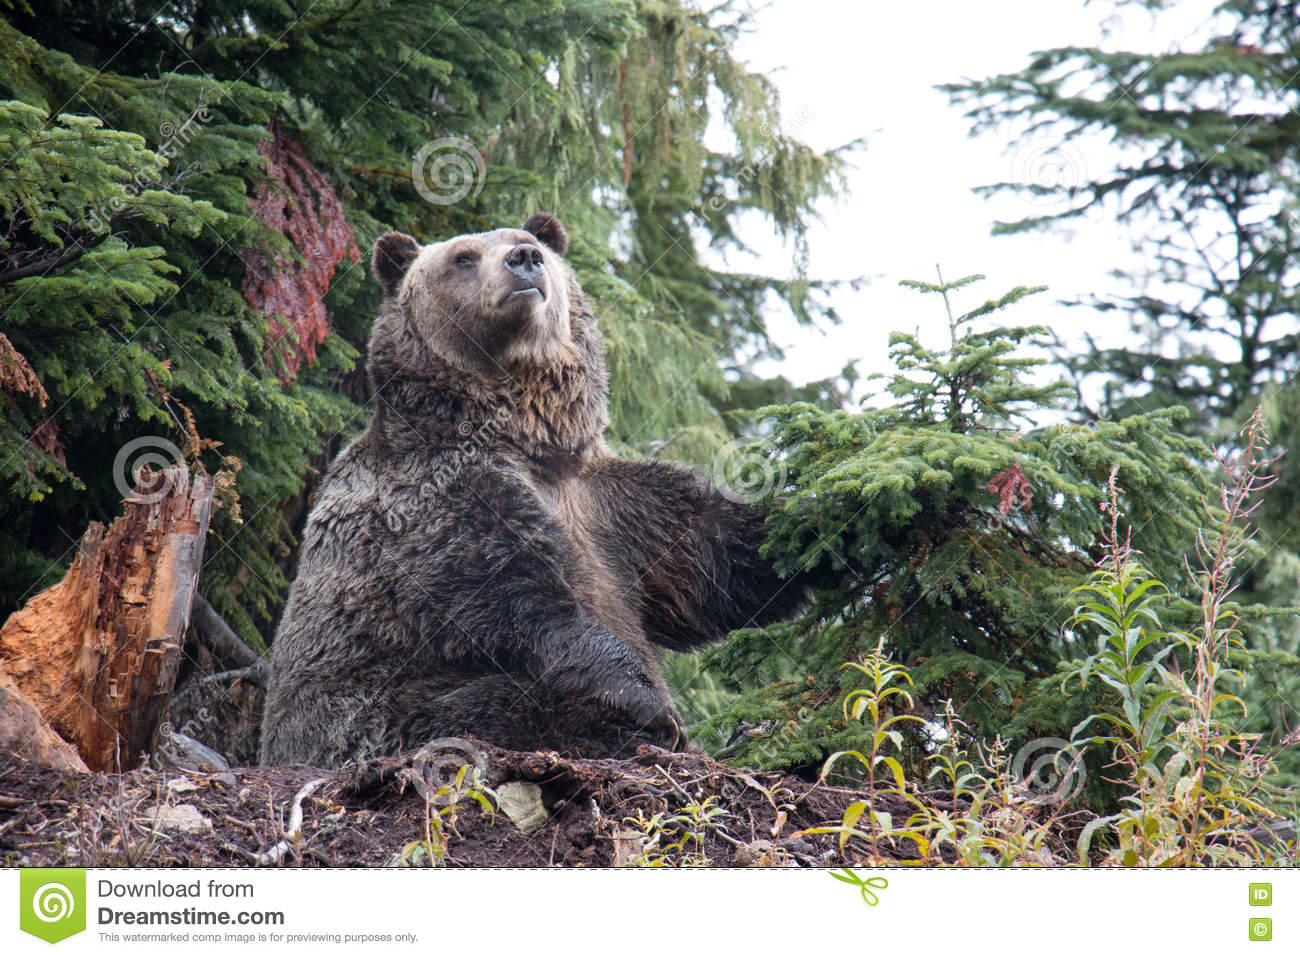 Grizzly bear striking a pose at Grouse Mountain, British Columbia